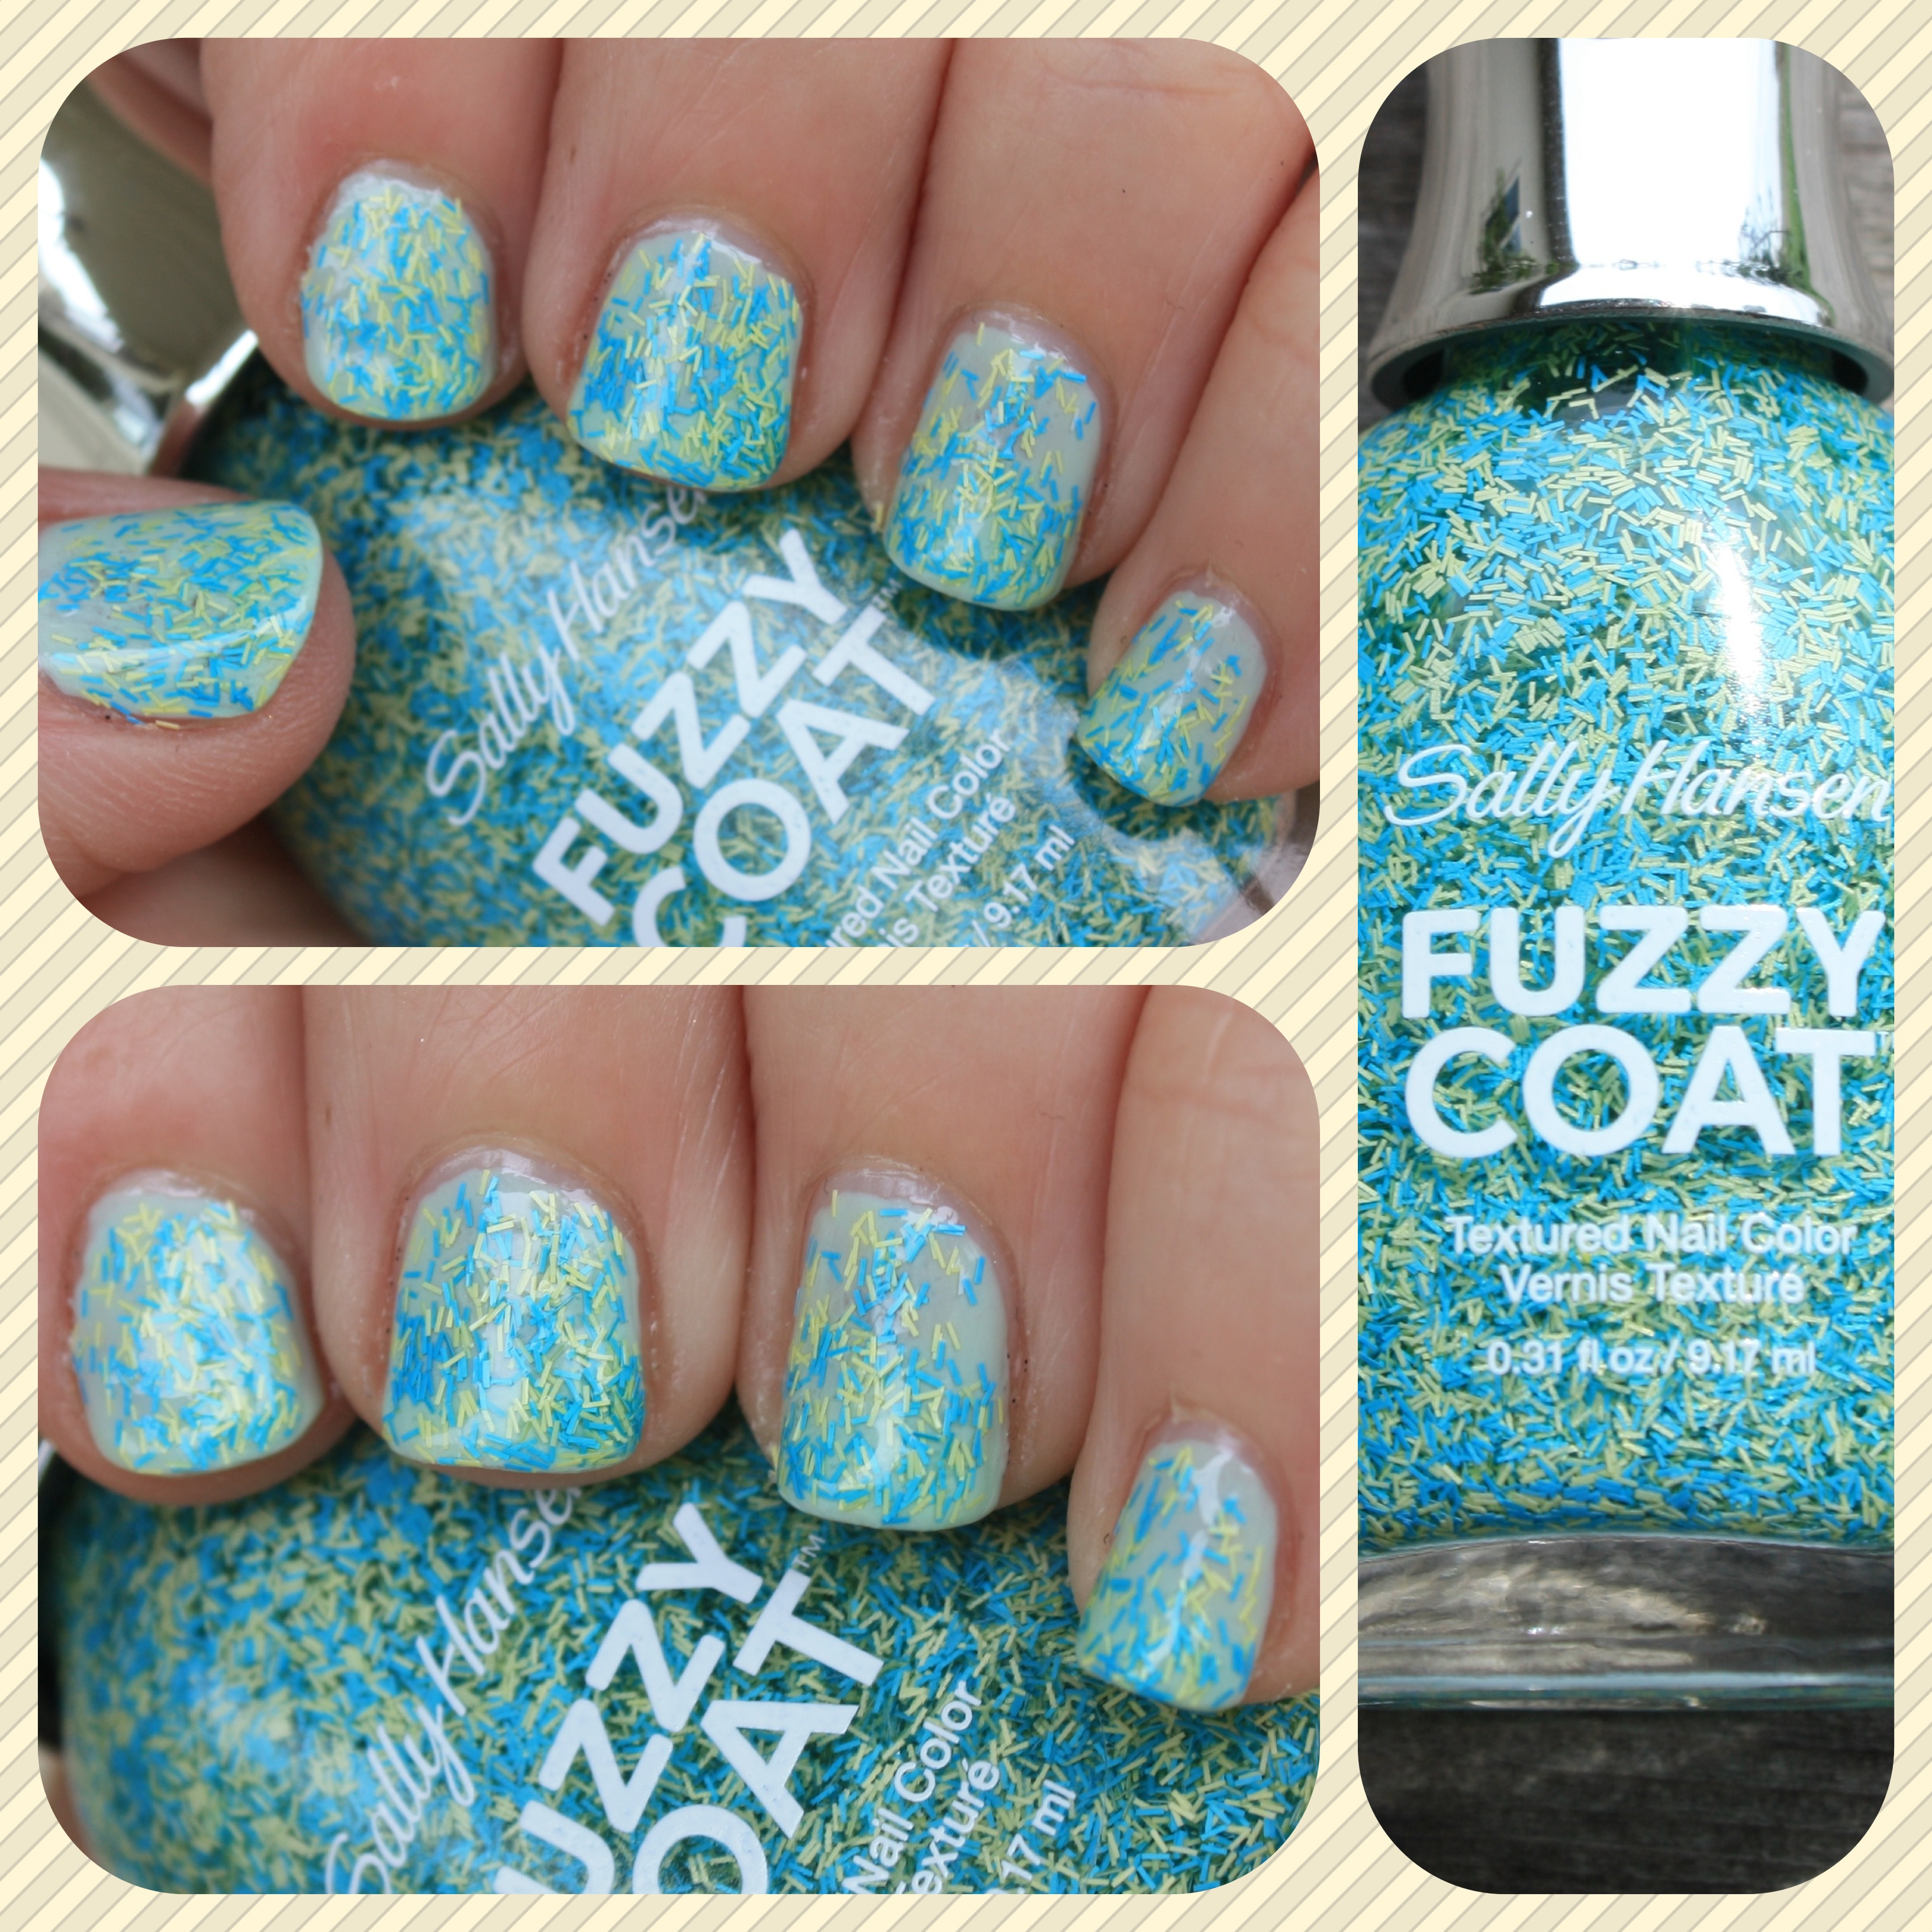 Sally Hansen Fuzzy Coat: Fuzz-Sea – horrendous color